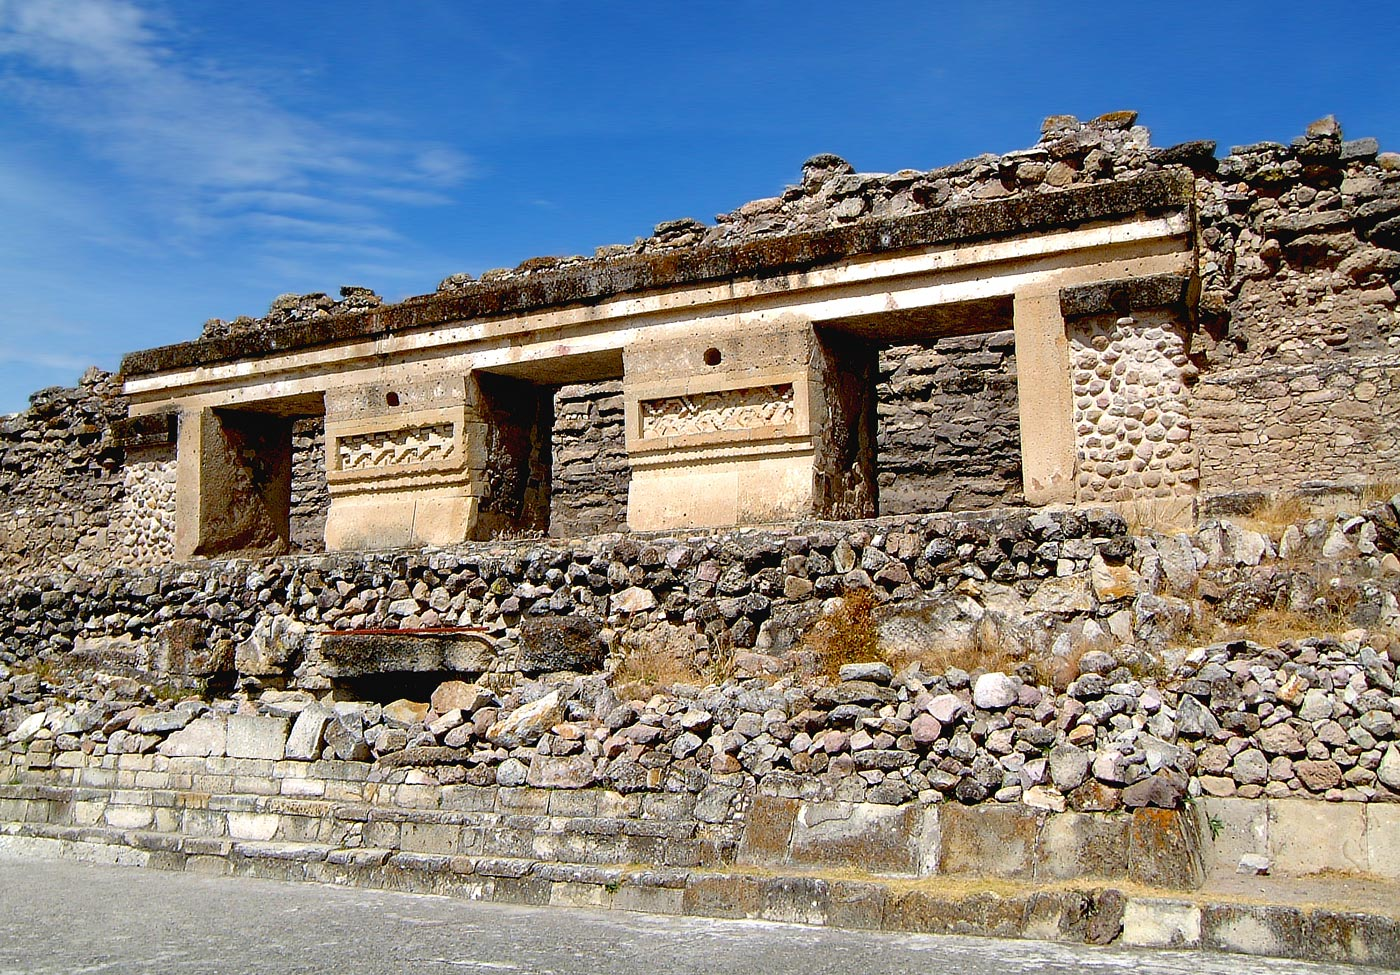 Building 9, which lines the north side of the South Group at Mitla